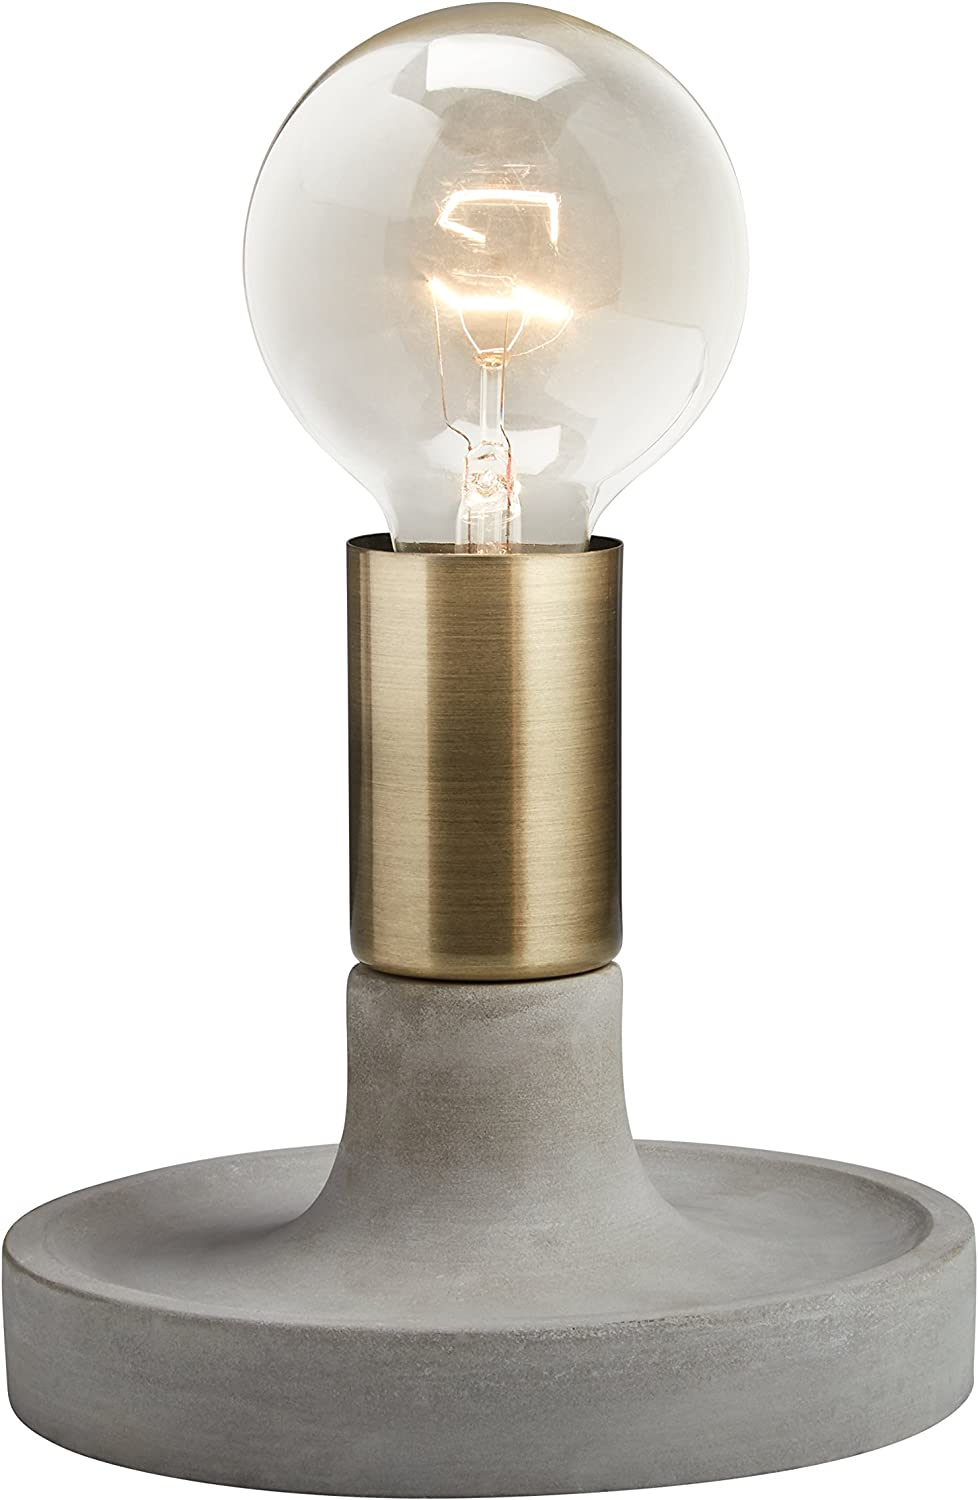 Rivet Modern Exposed Bulb Table Lamp, Cement with Antique